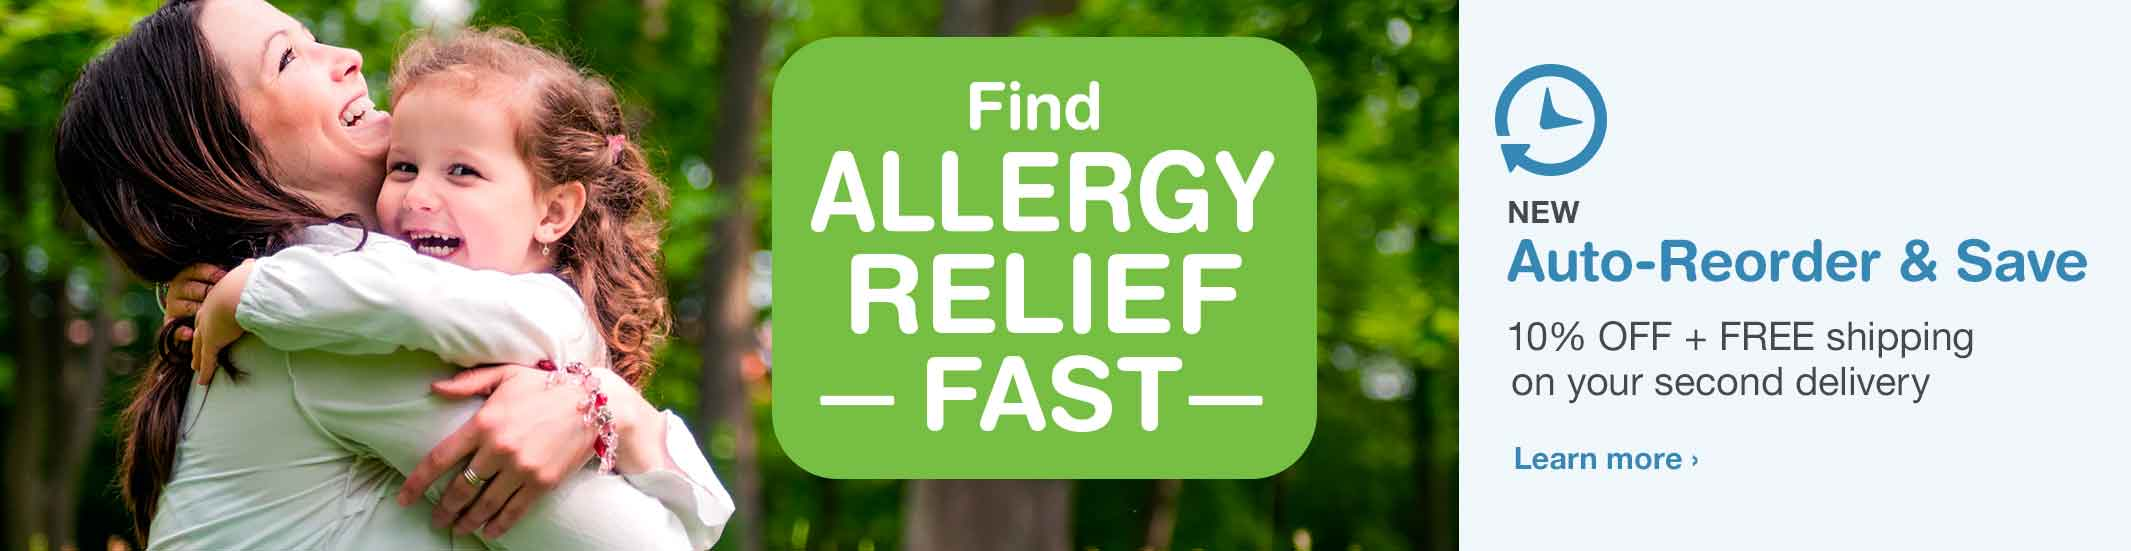 Find Allergy Relief Fast + New Auto-Reorder & Save. Learn more.